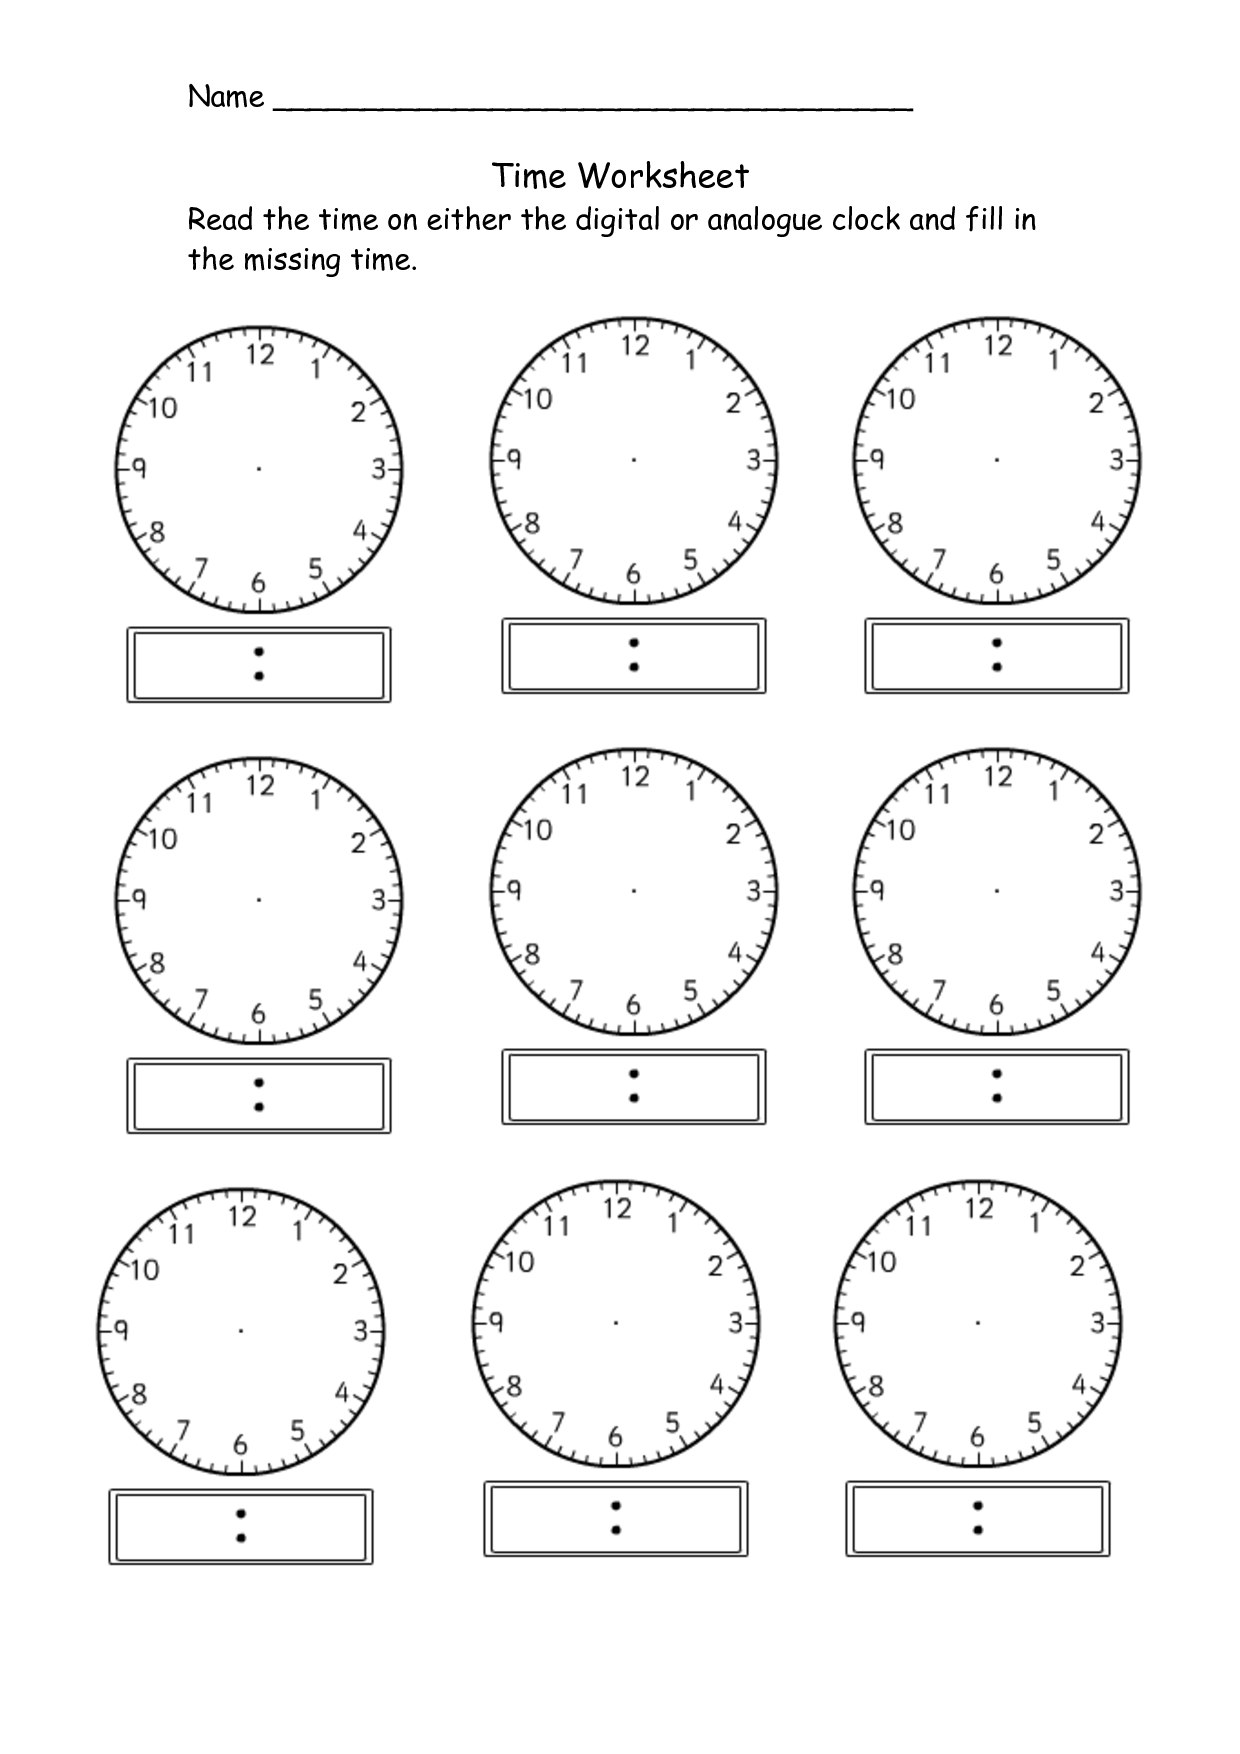 worksheet Clock Faces Worksheets blank clock worksheet telling time kiddo shelter education home office 15 best images of digital worksheets intended for clocks the most amazing